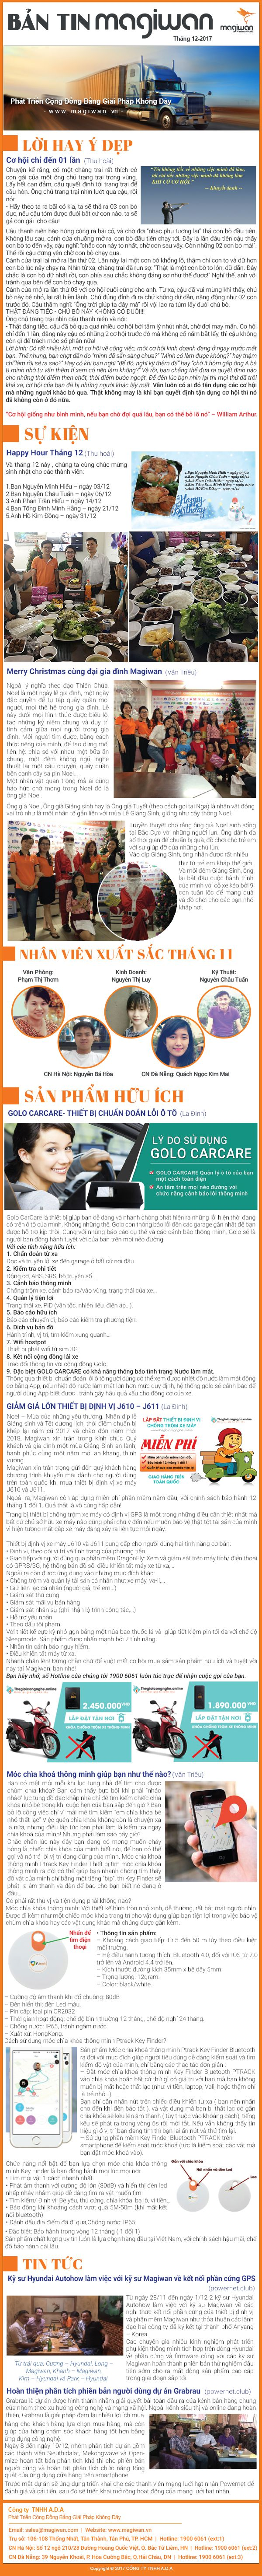 email thang 12-sua